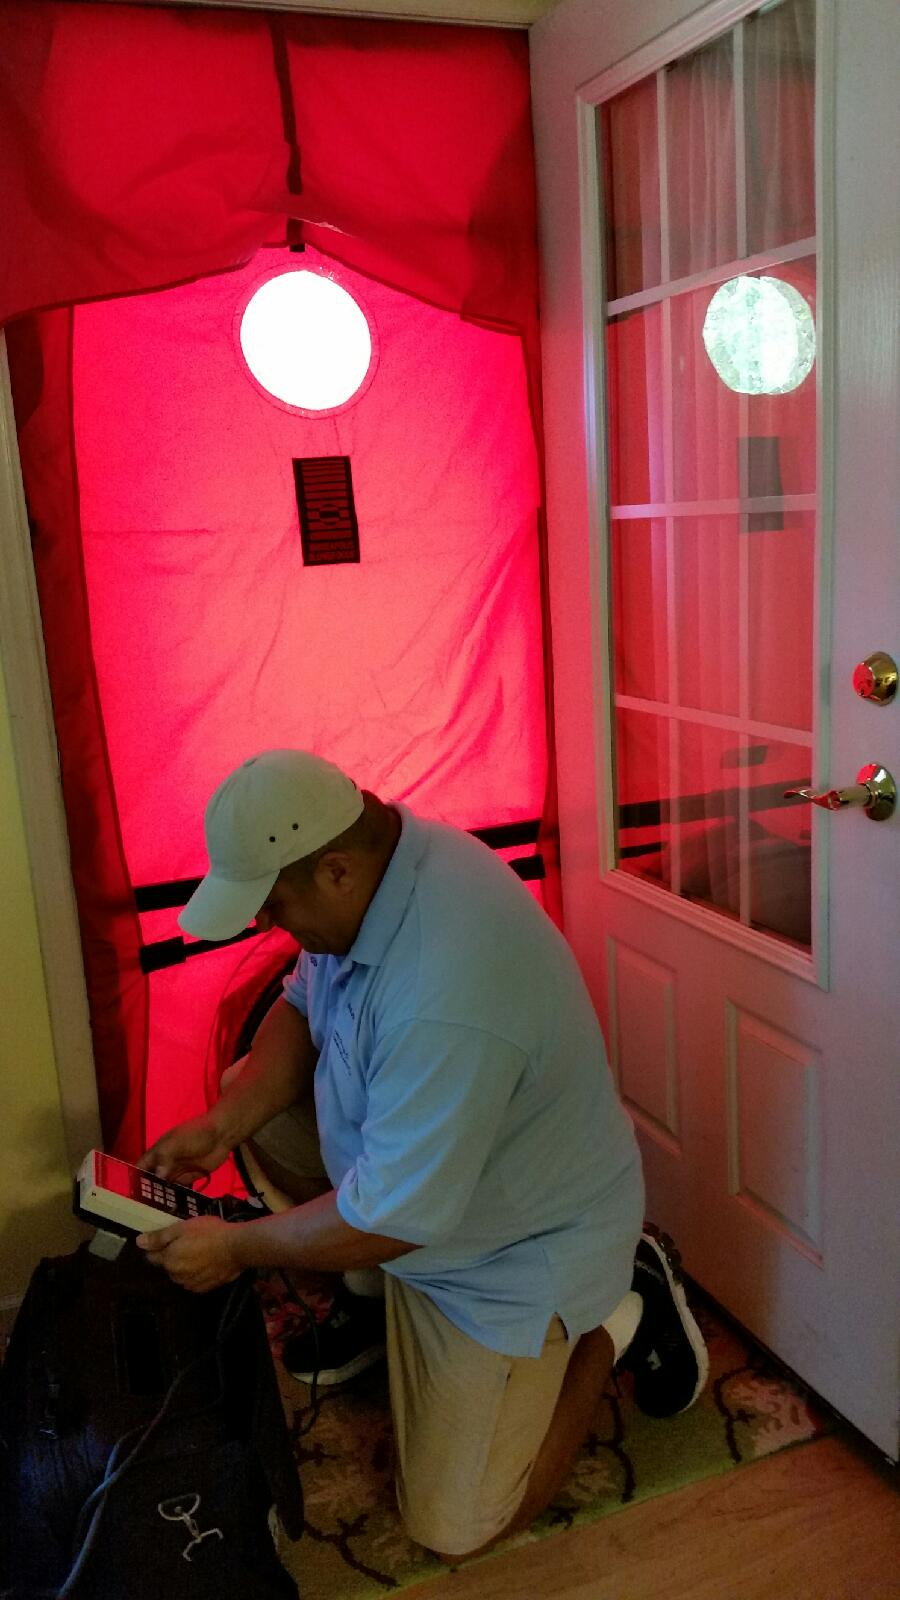 Blower Door Test 3 - WAP PY 16